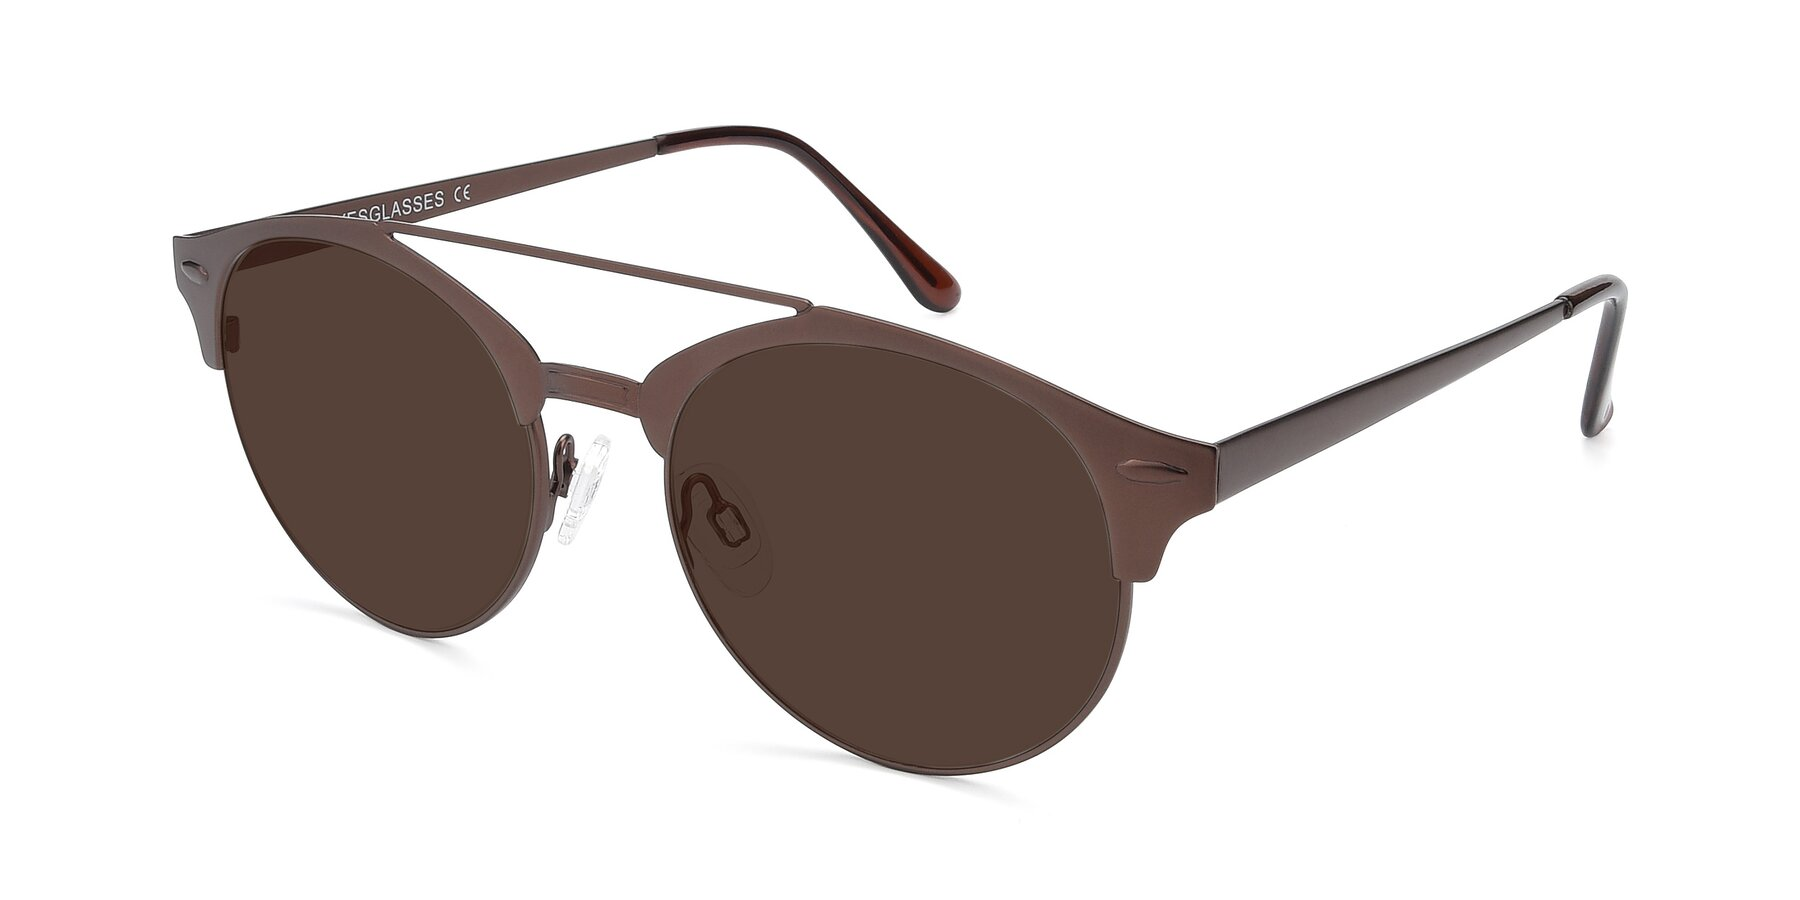 Angle of SSR183 in Chocolate with Brown Tinted Lenses